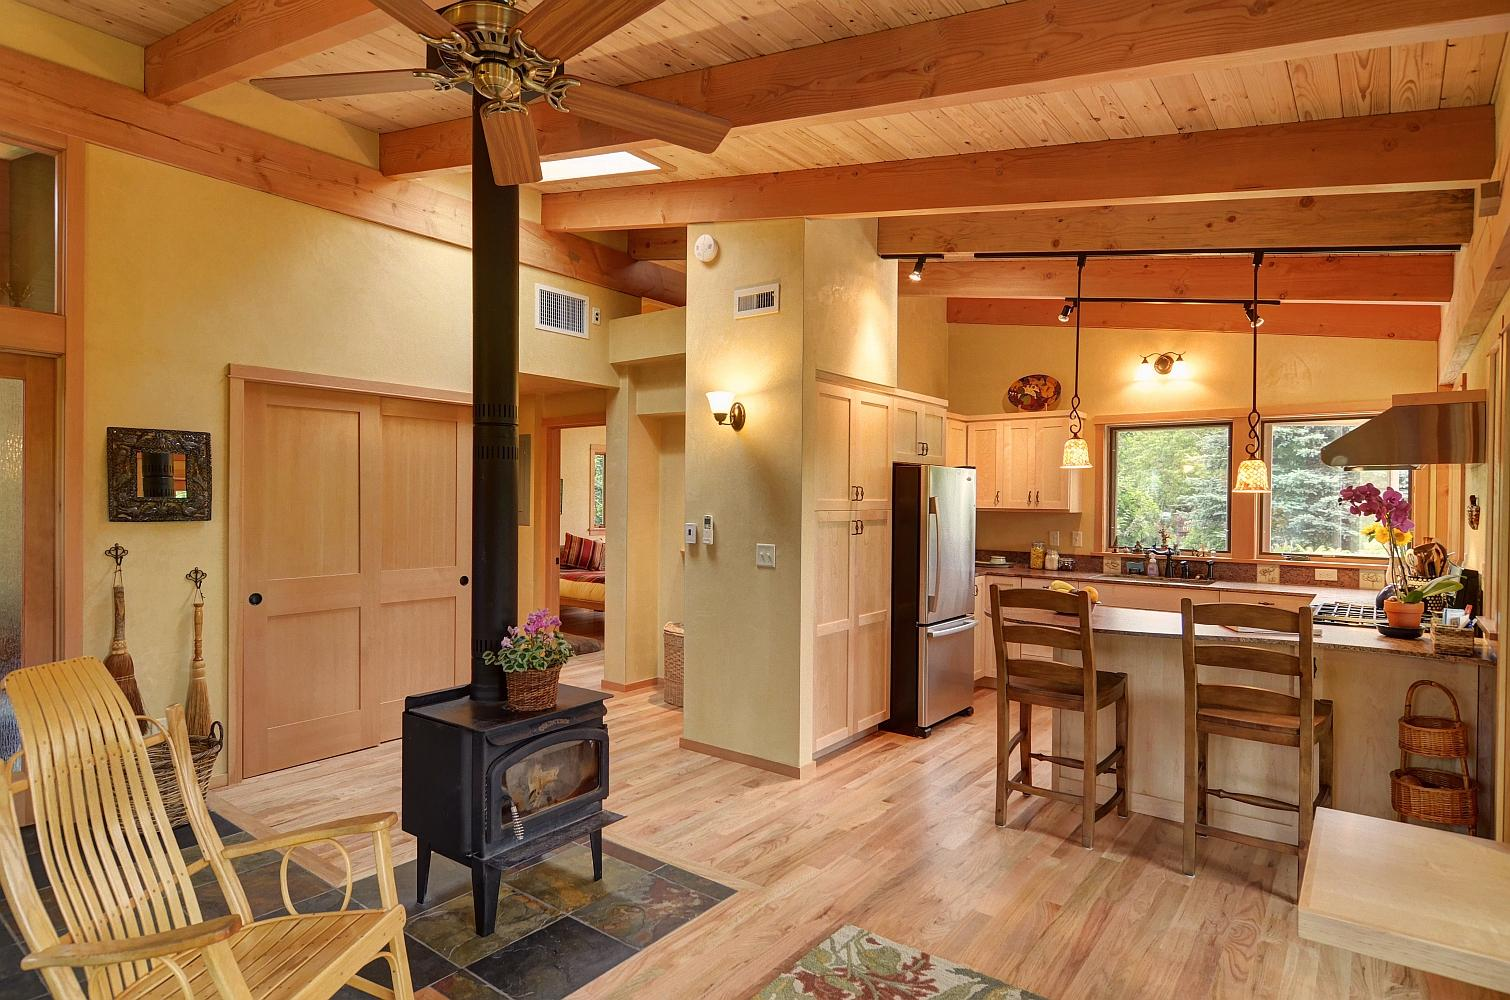 gallery river road house a beautiful timber frame dwelling nir pearlson small house bliss. Black Bedroom Furniture Sets. Home Design Ideas